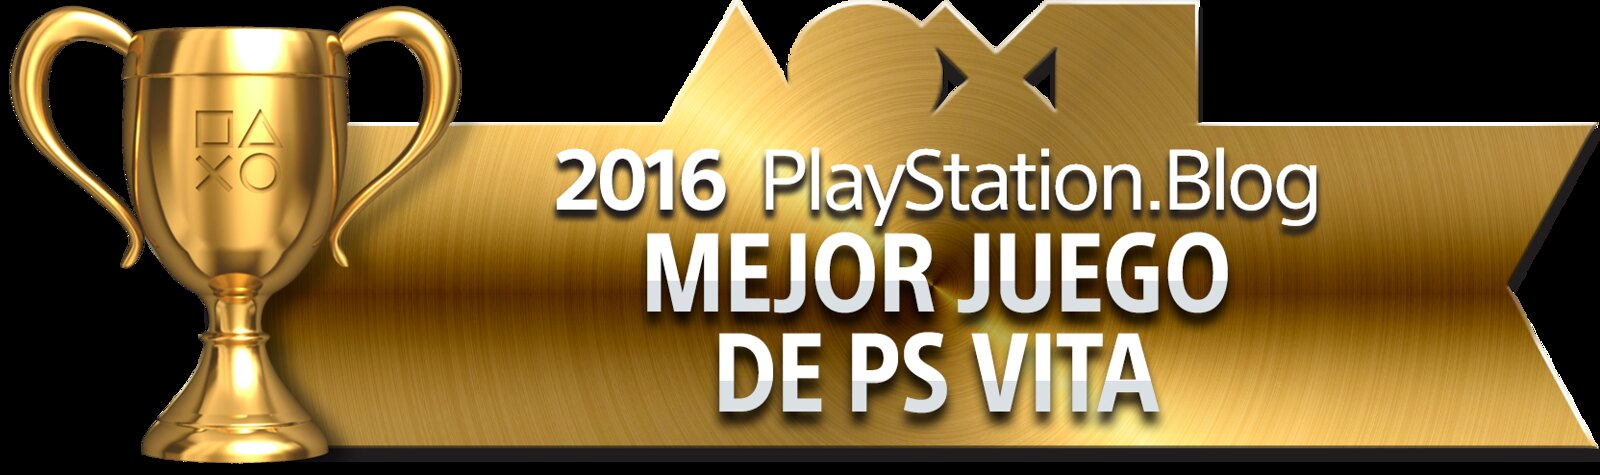 Best PS Vita Game - Gold